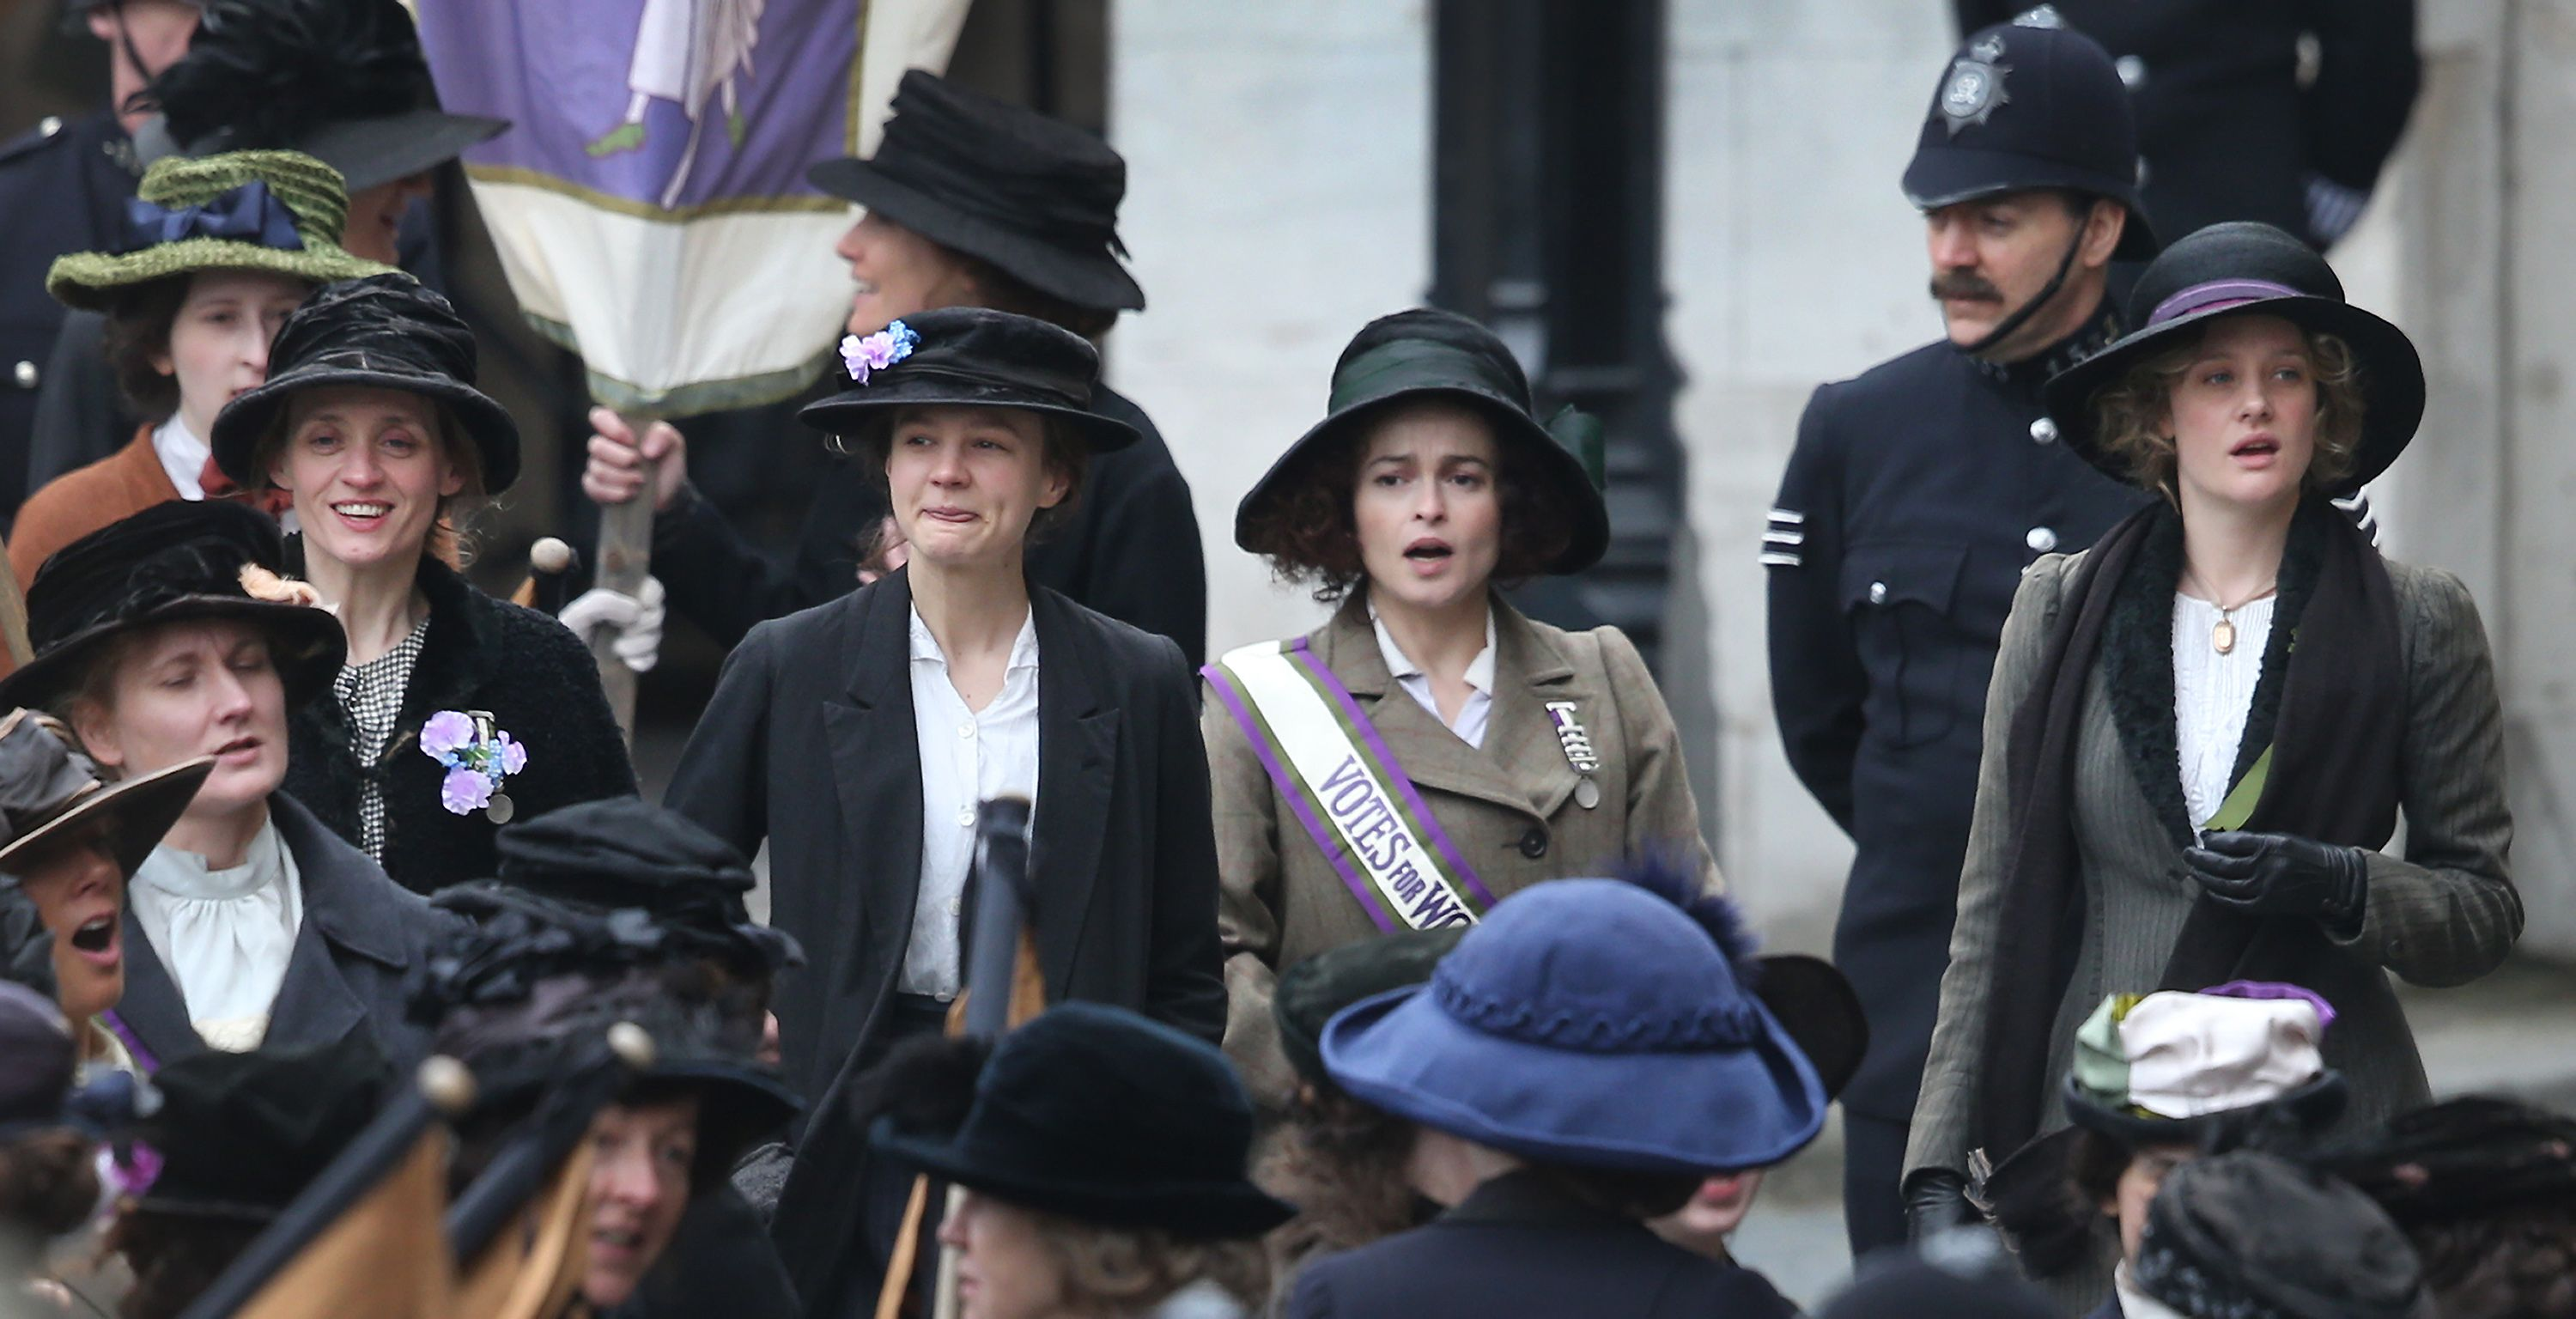 suffragette film